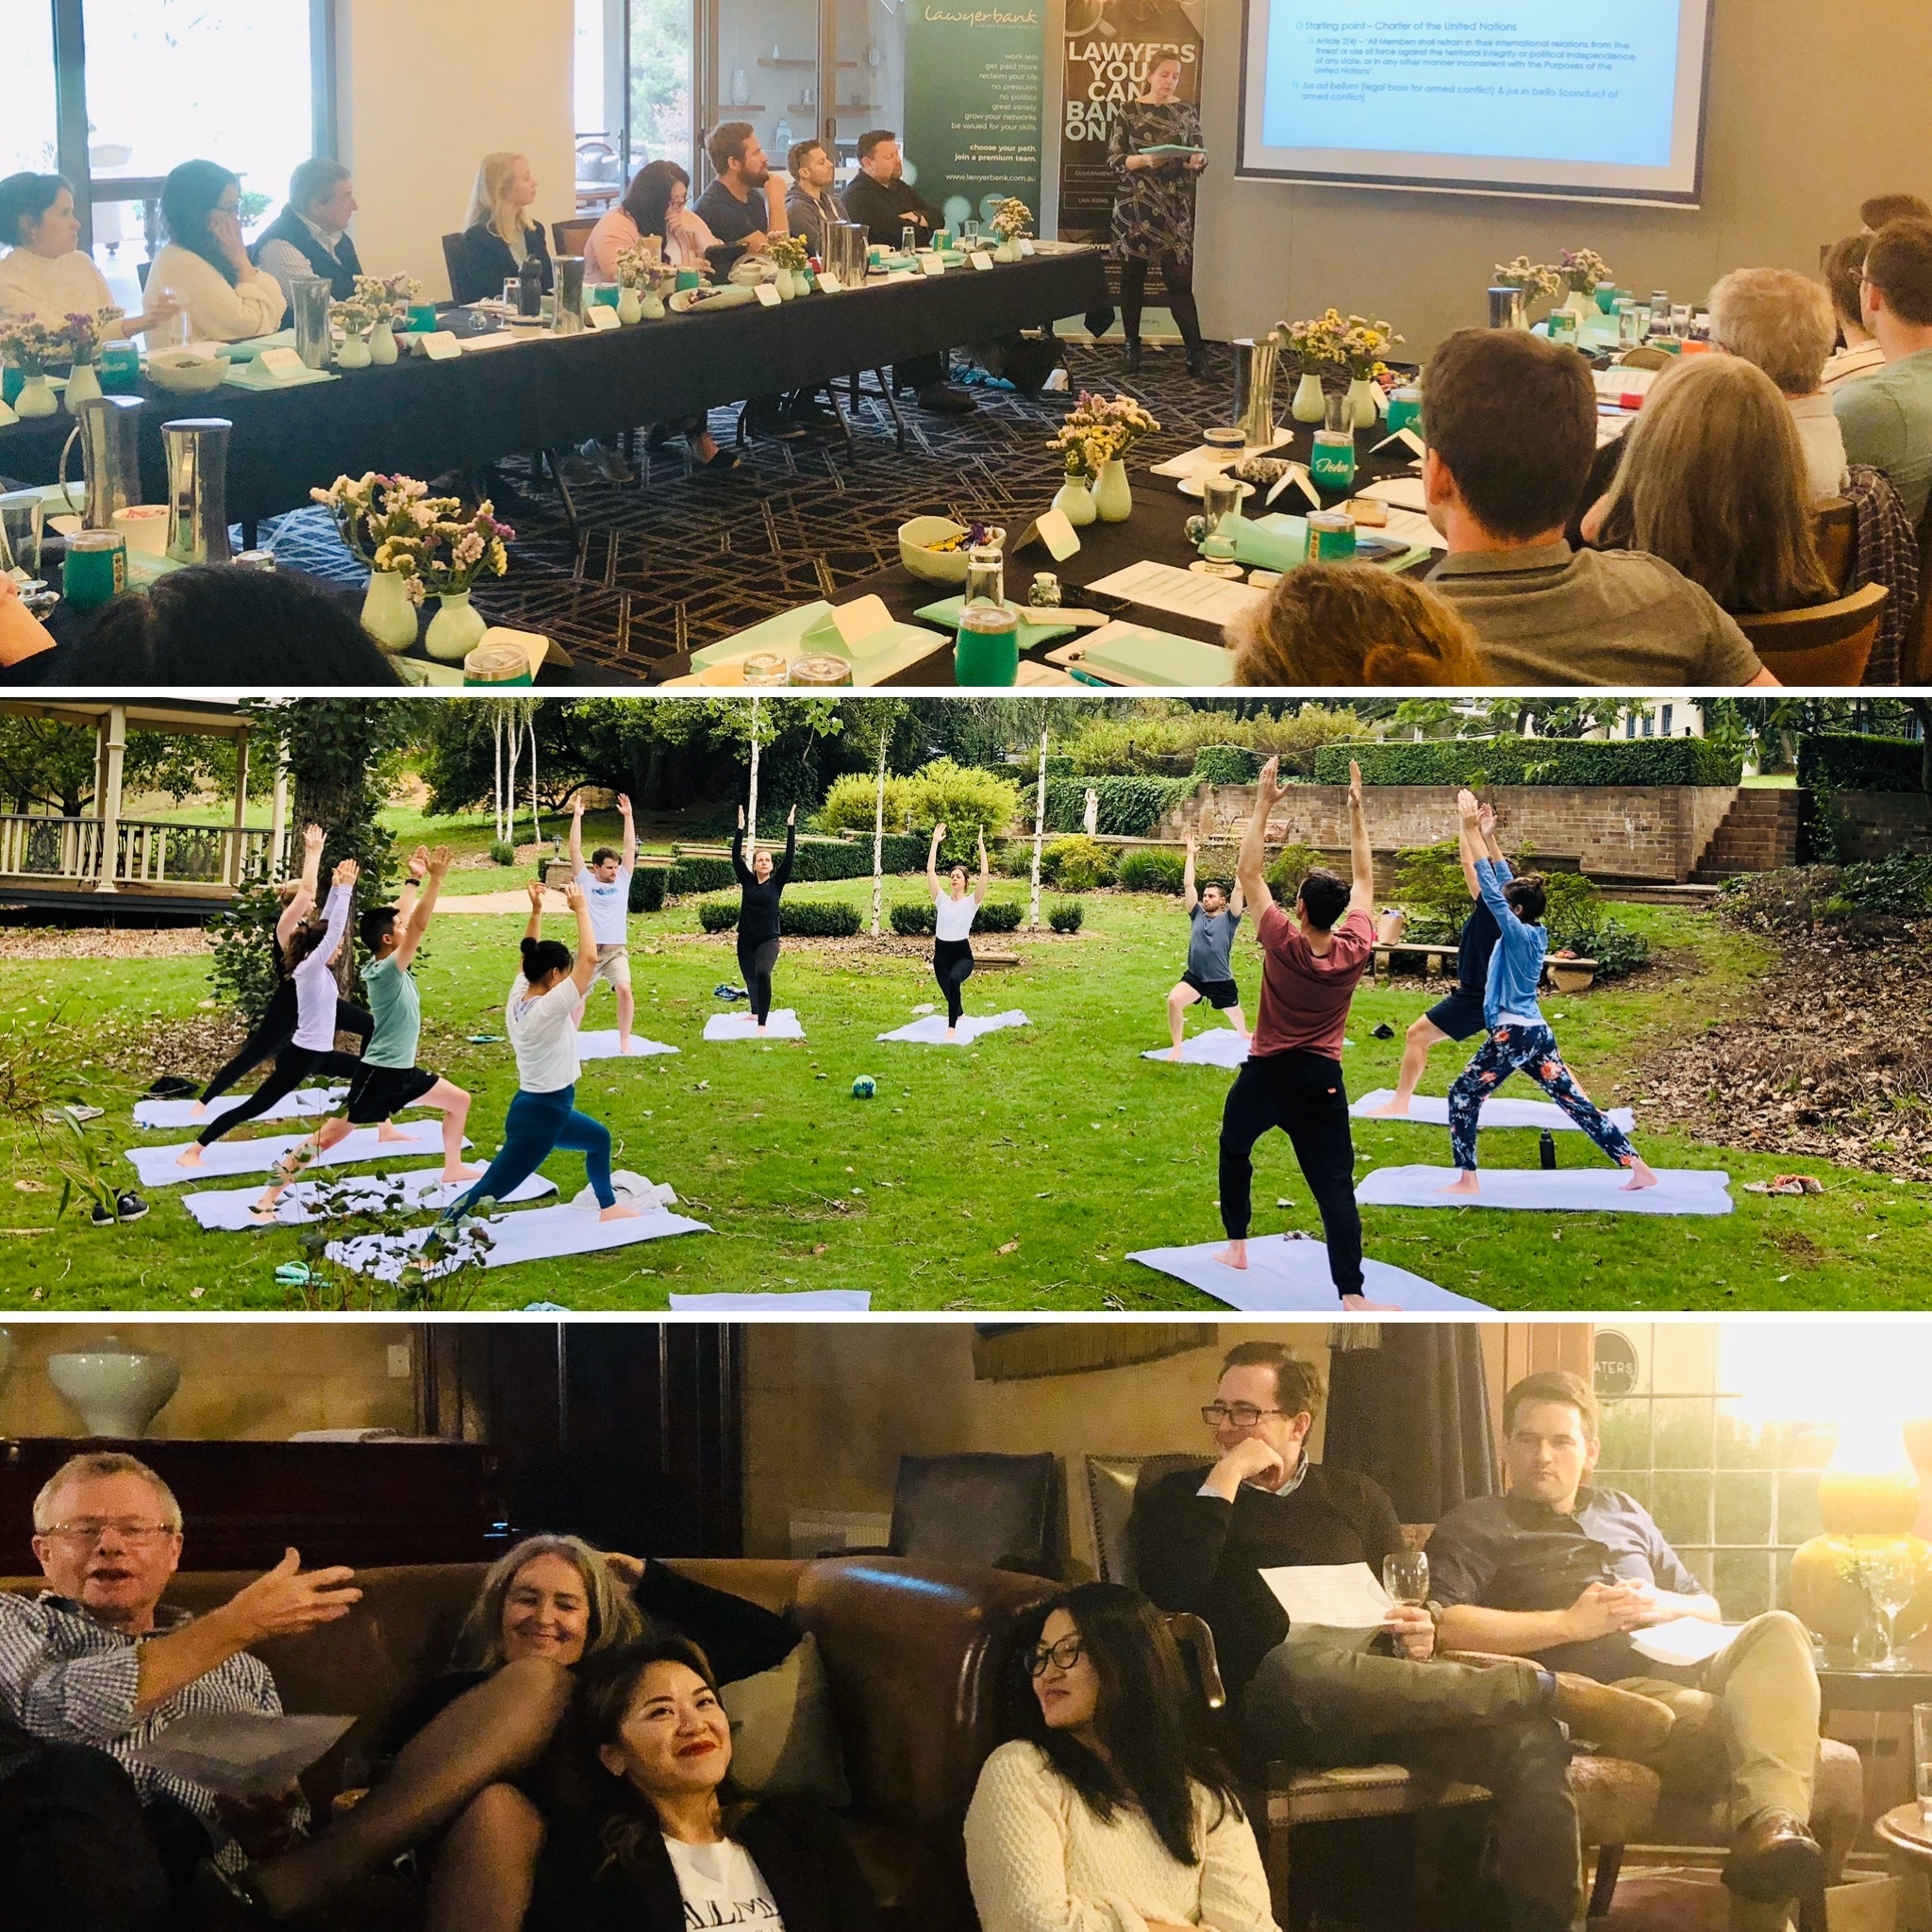 lawyerbank CPD Retreat 2020 – The activities!